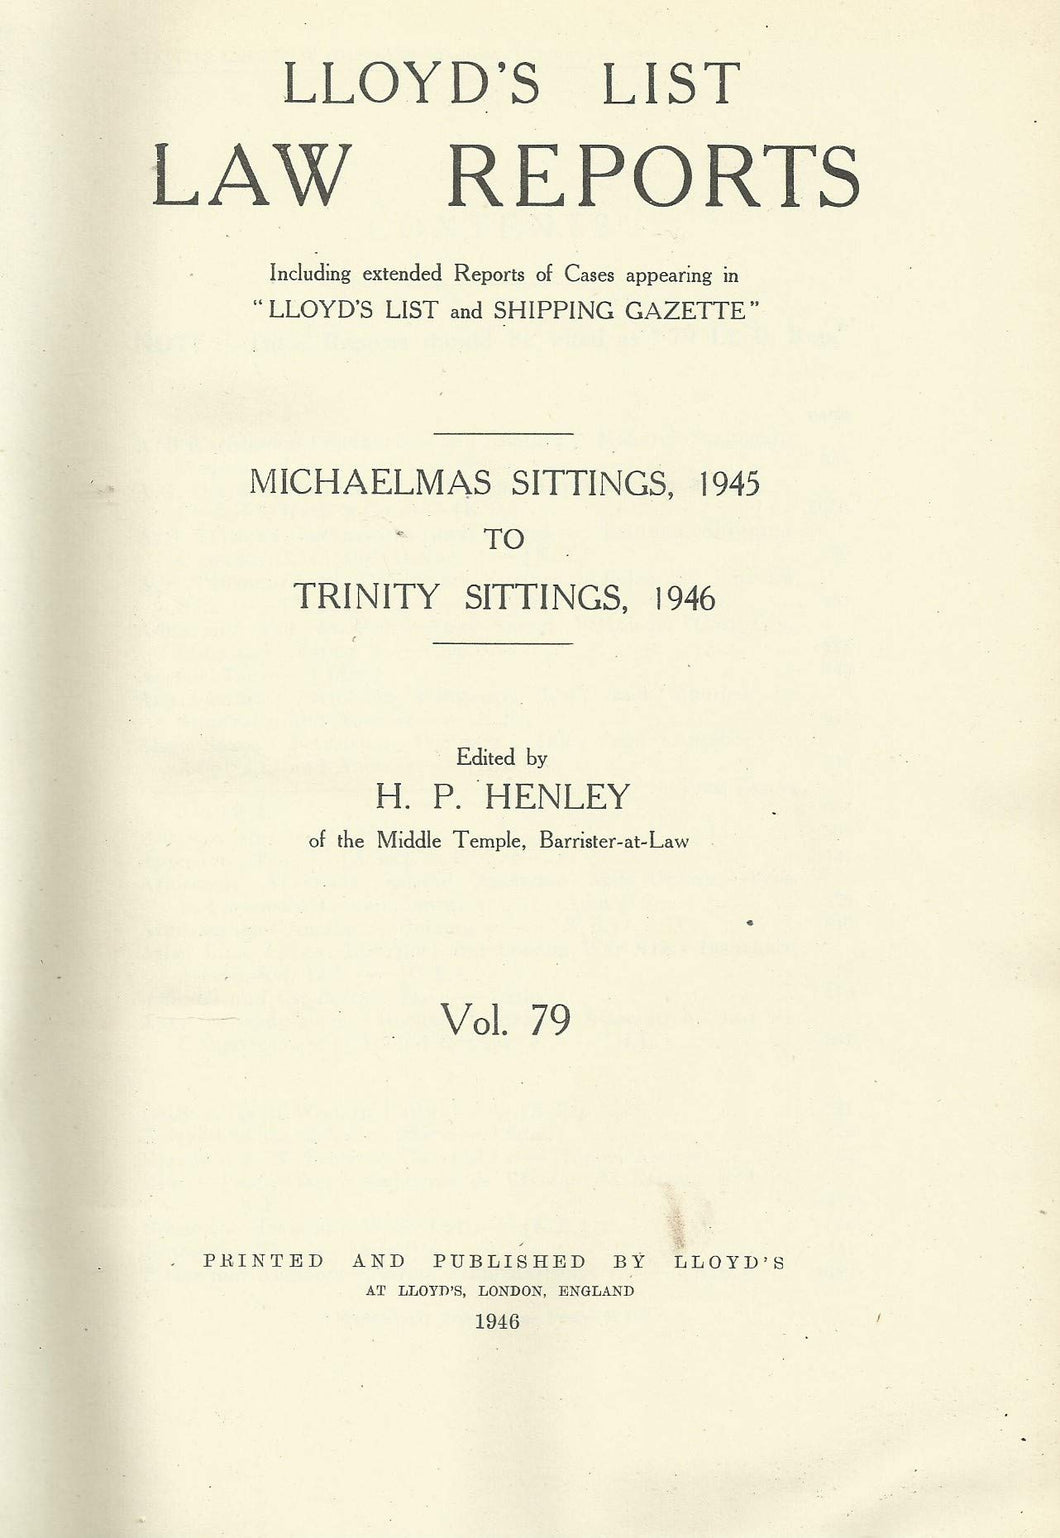 Lloyd's List Law Reports - Michaelmas, 1945 to Trinity, 1946, Vol 79